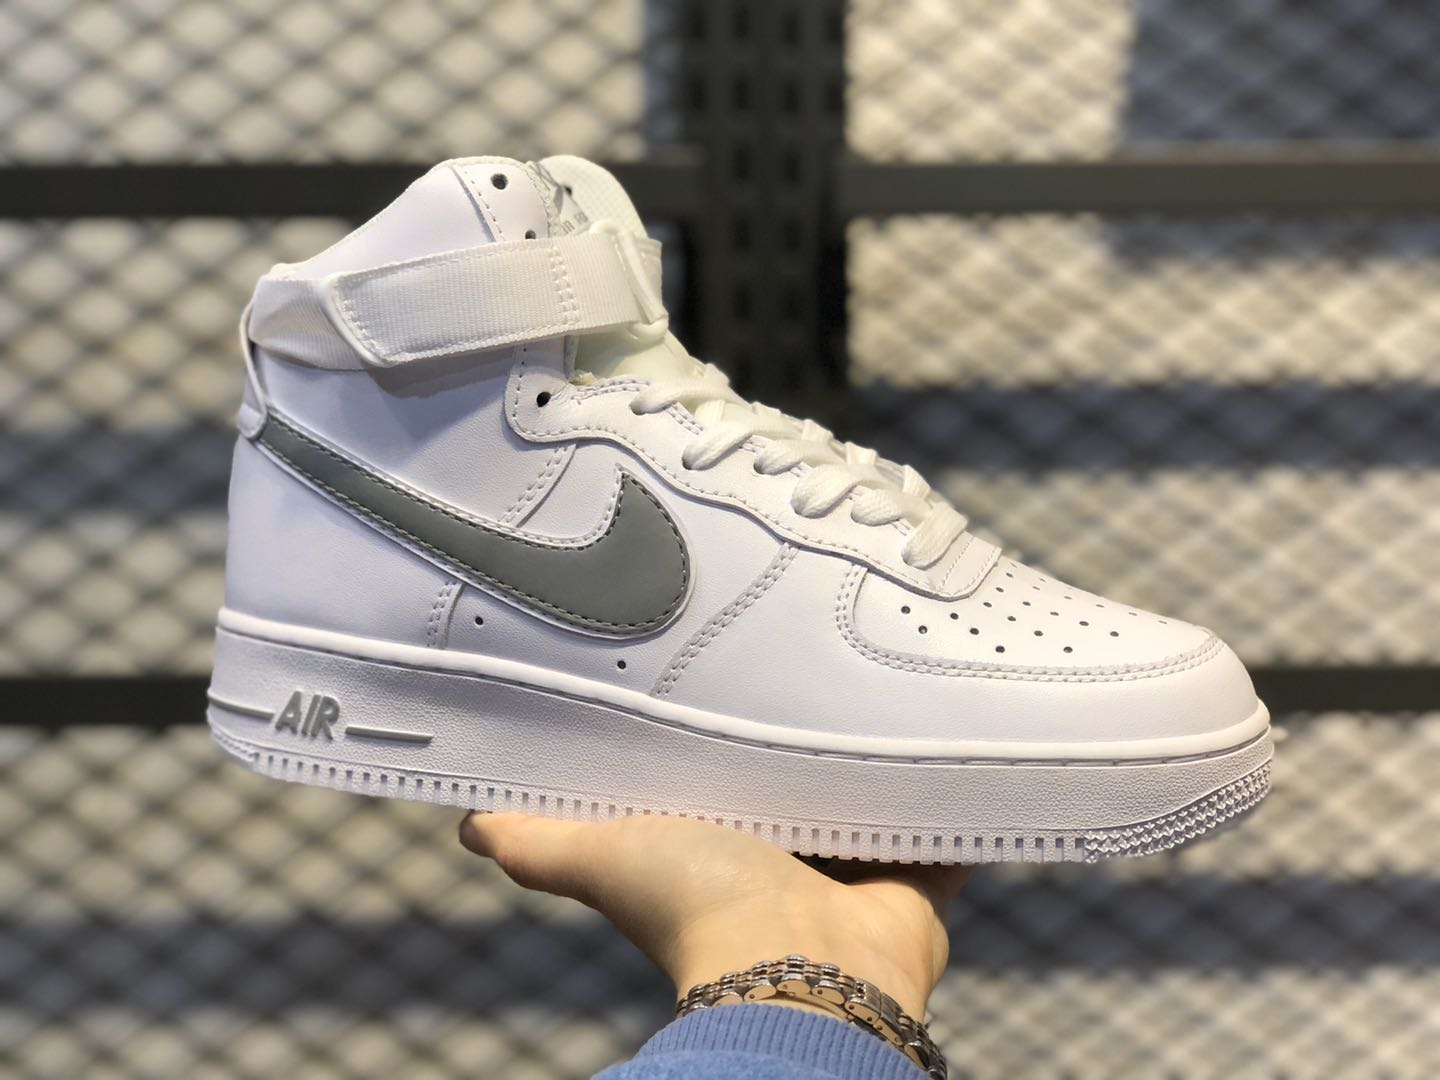 Nike Air Force 1 High White/Wolf Grey For Online Sale AT4141-100